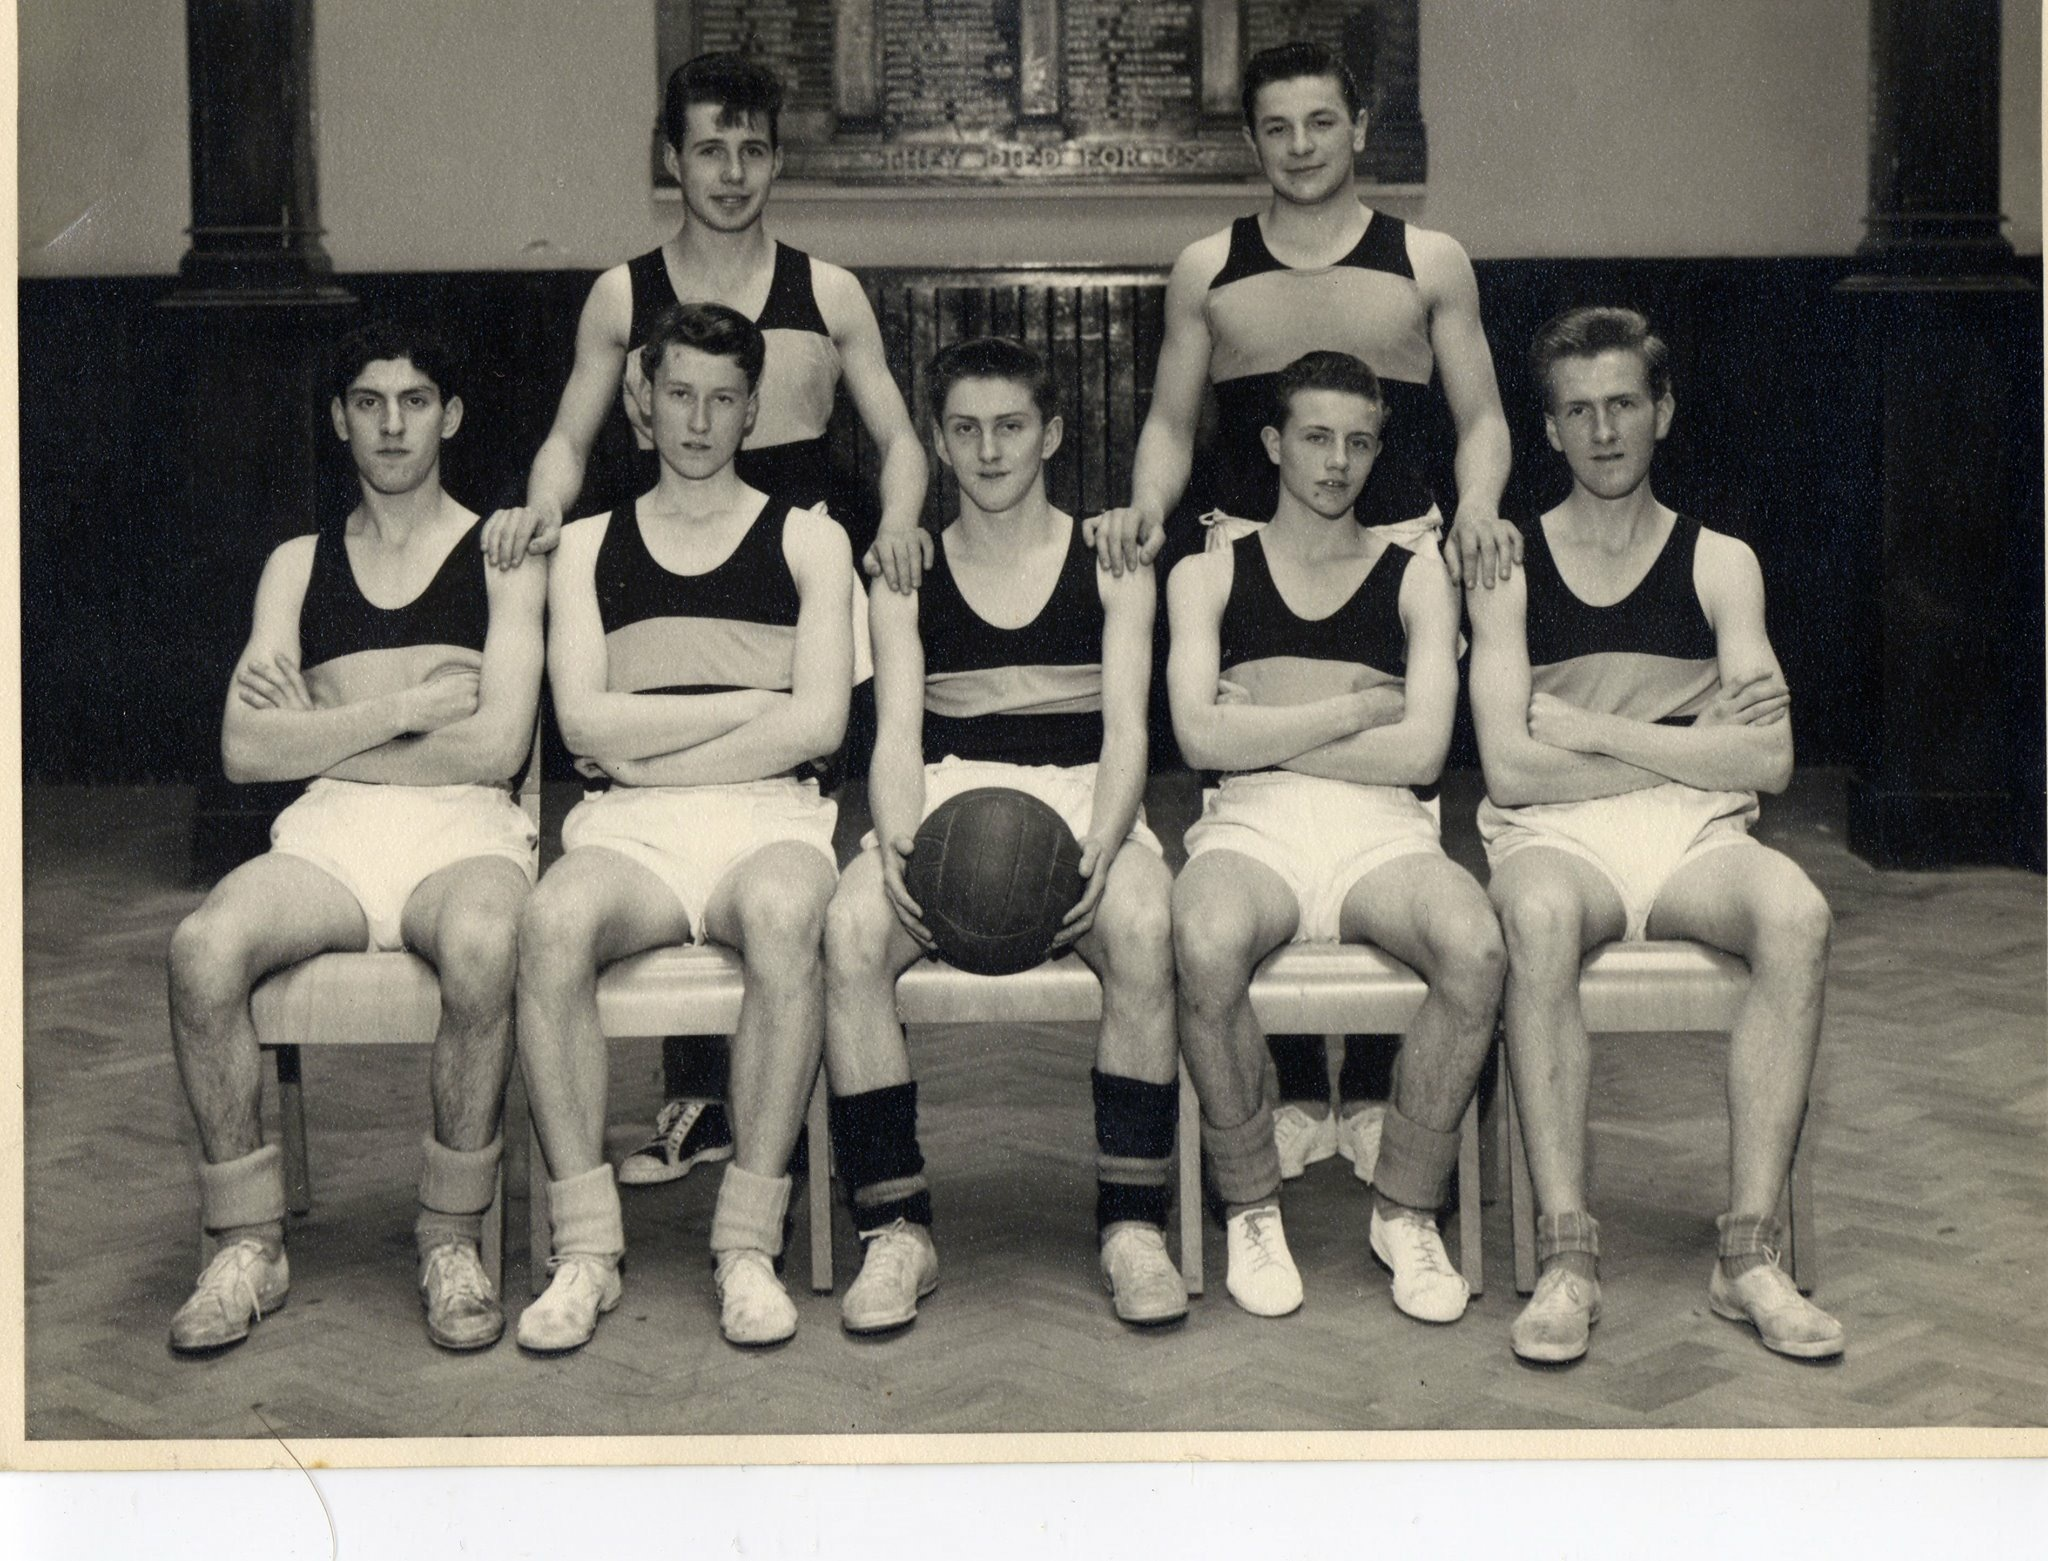 Dante in his basketball playing days